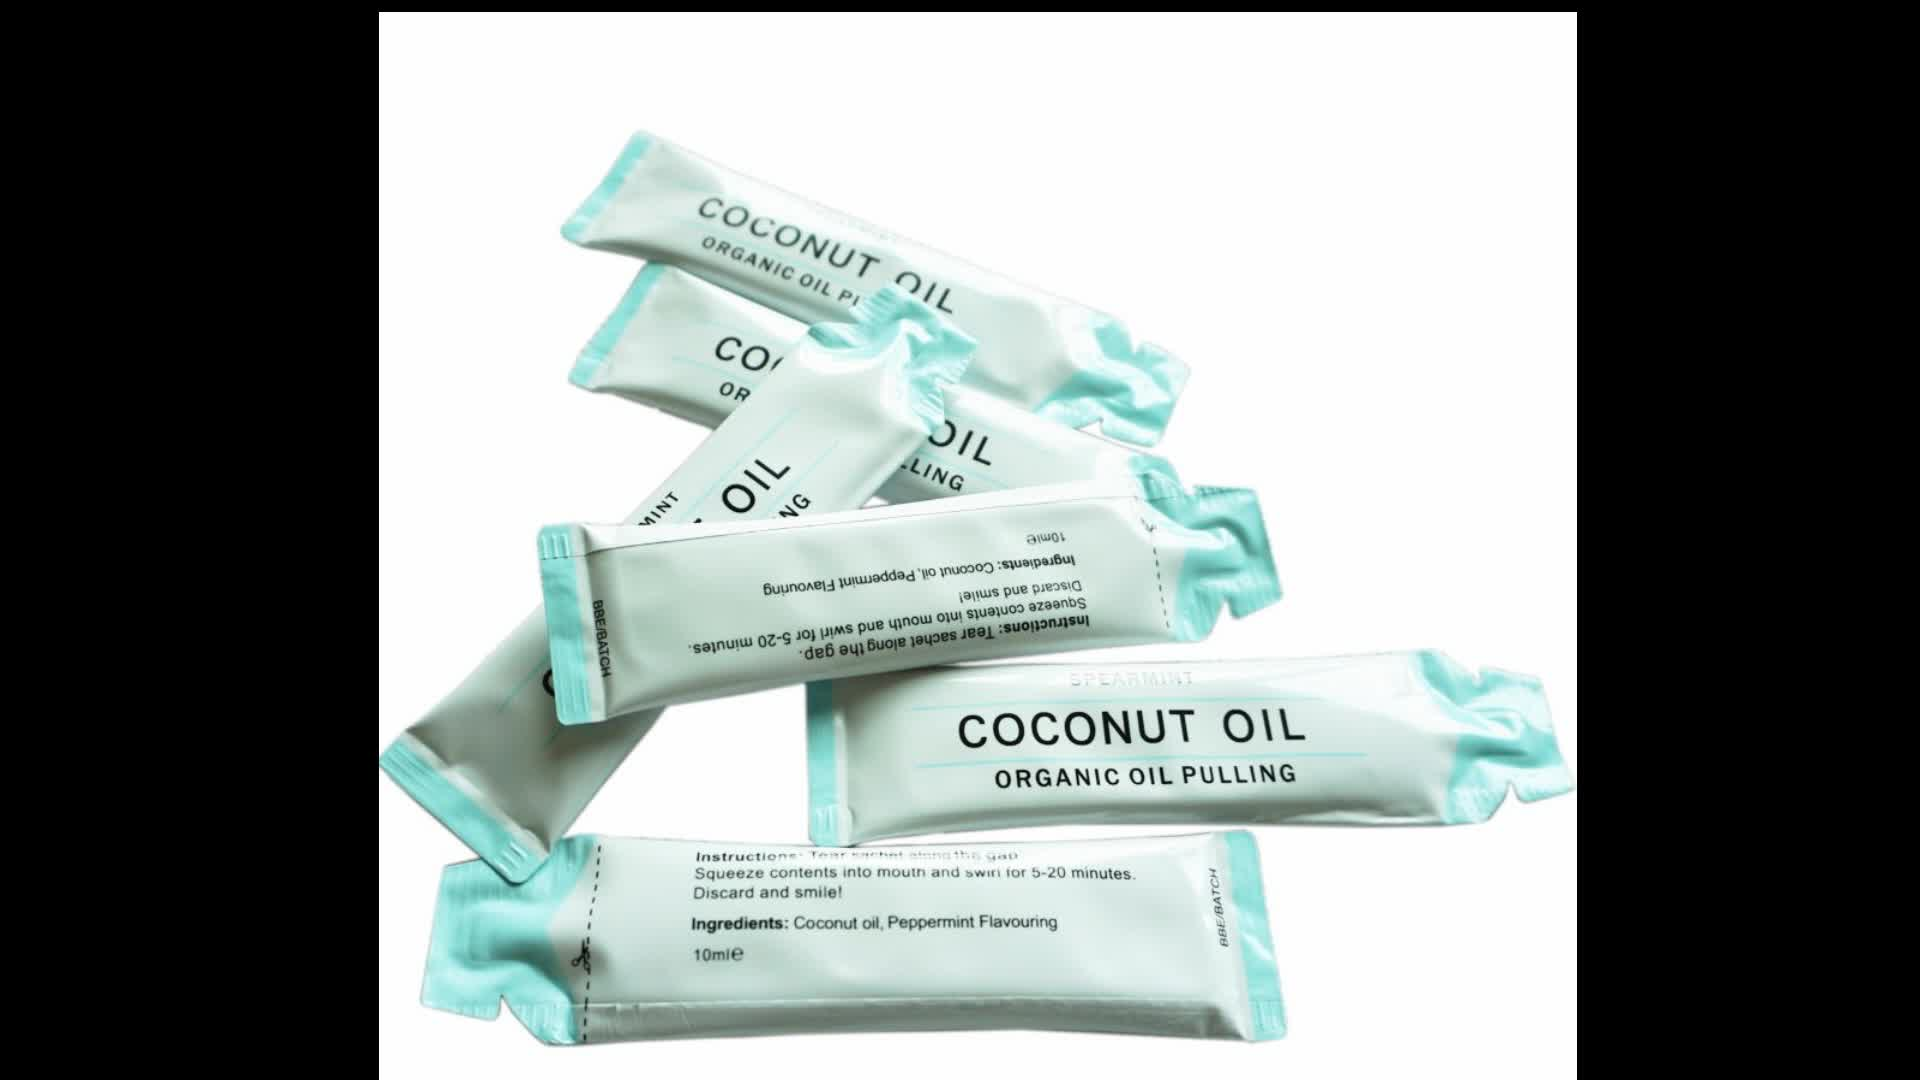 The Coconut Oil Pulling Teeth Whitening Mint Flavor Natural Magic